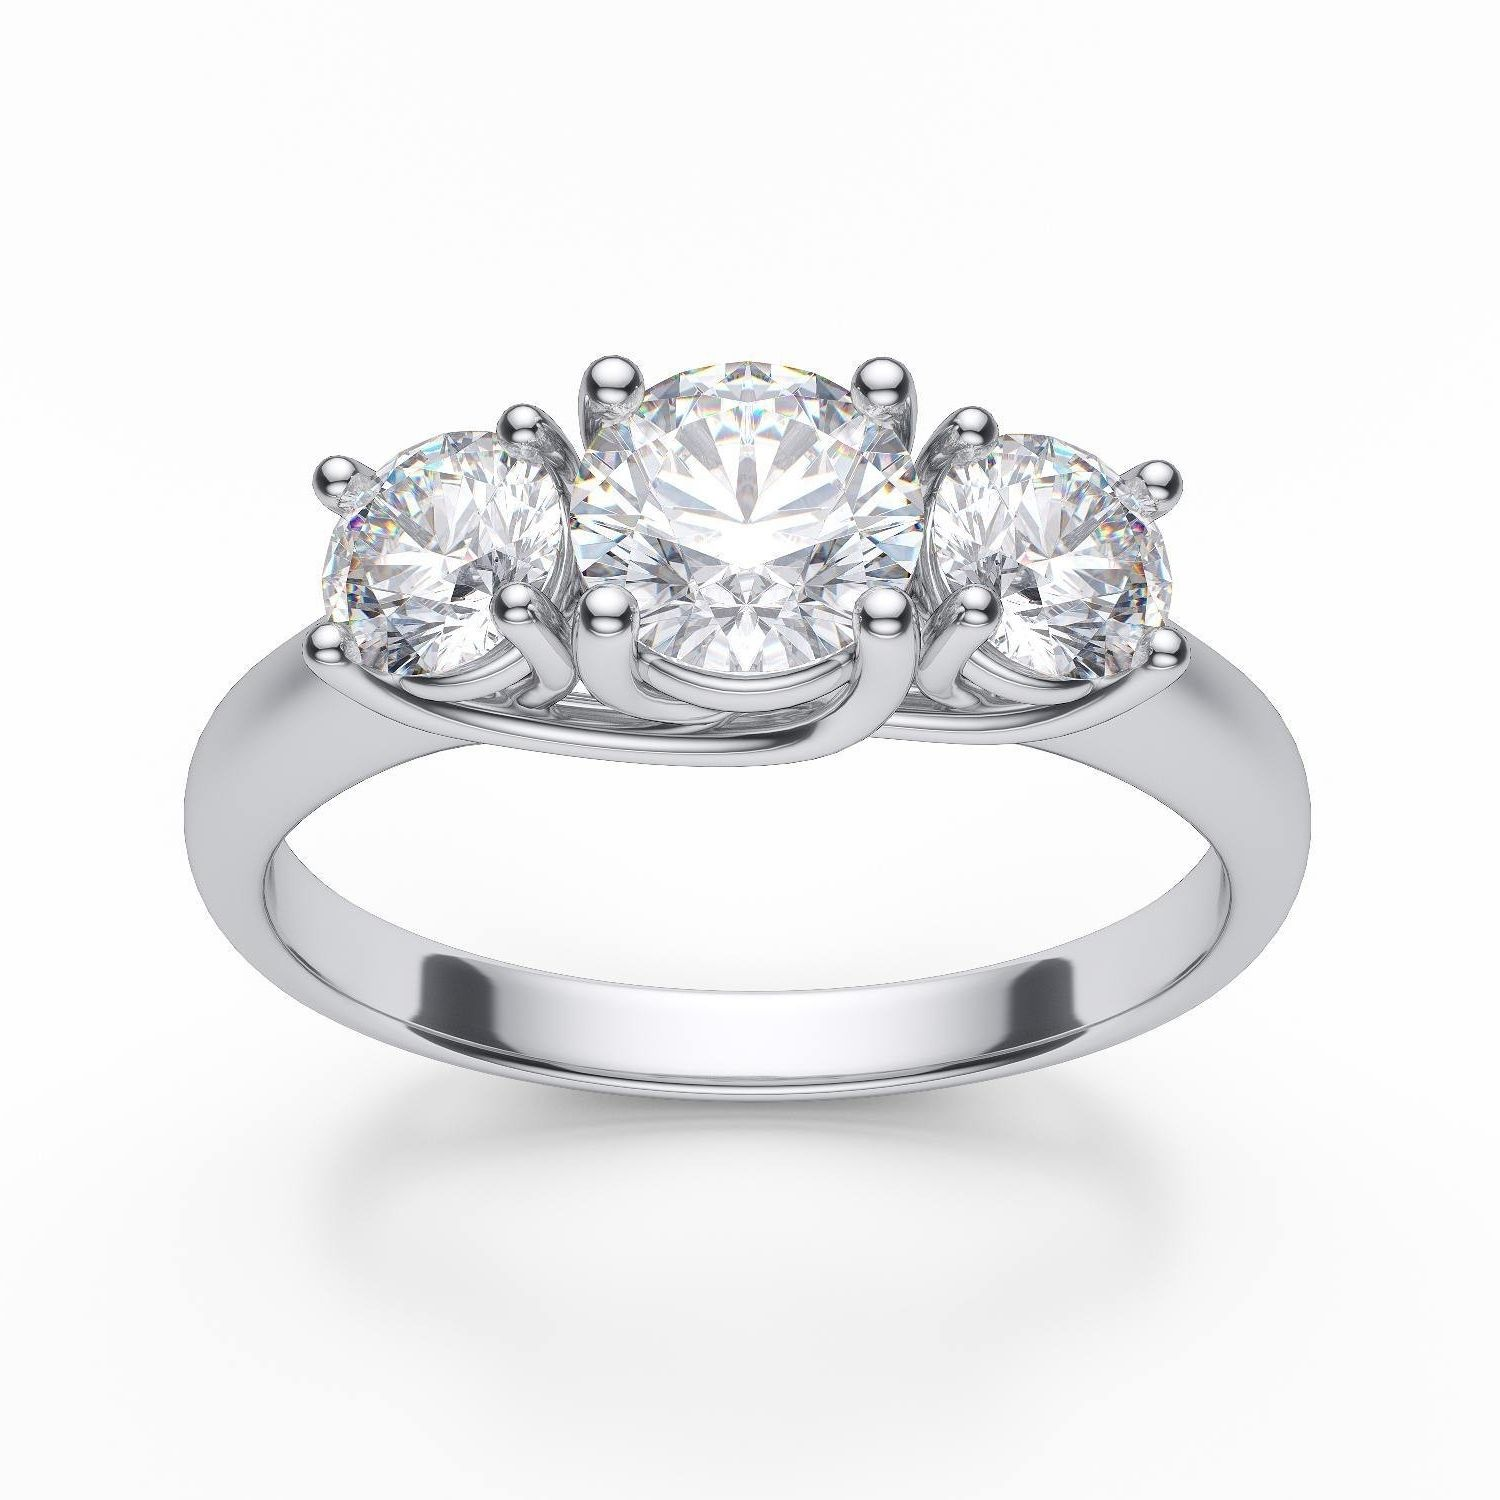 prince diamonds blog by featuring hand entirely of anniversary ring from oval jewellery made london platinum bench bespoke solid in stone daniel rings diamond